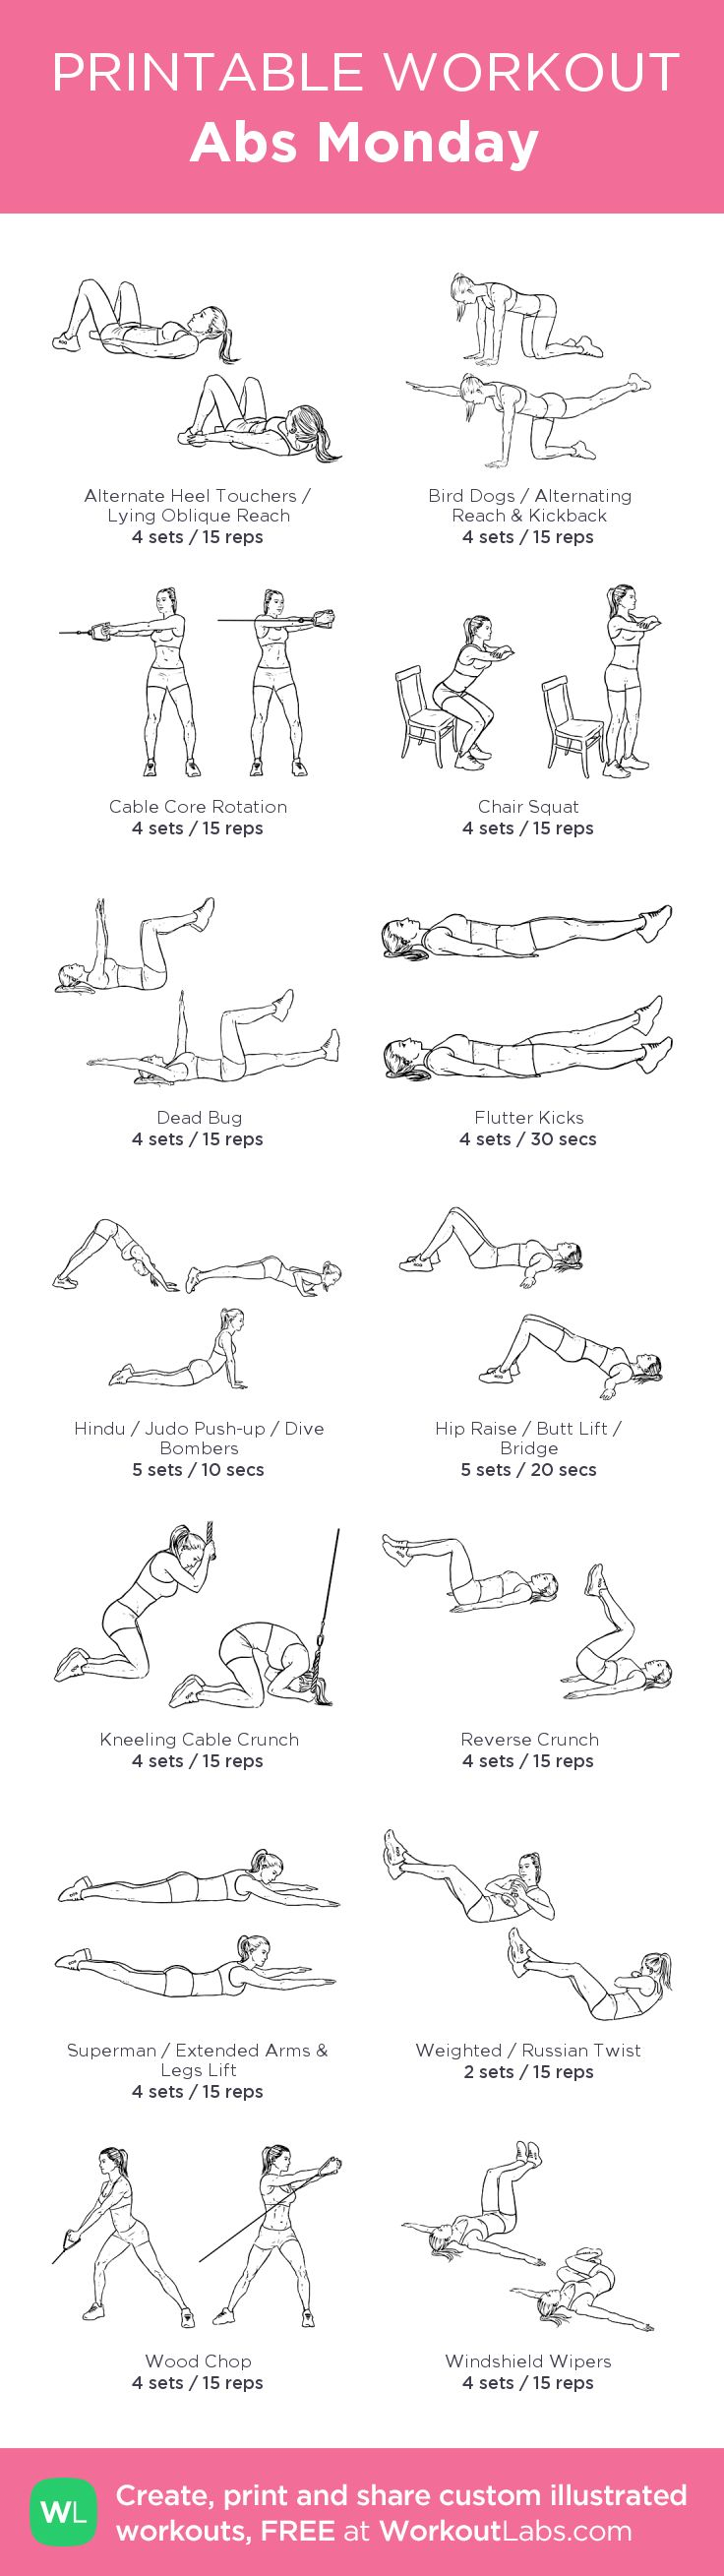 Abs Monday: my visual workout created at WorkoutLabs.com •